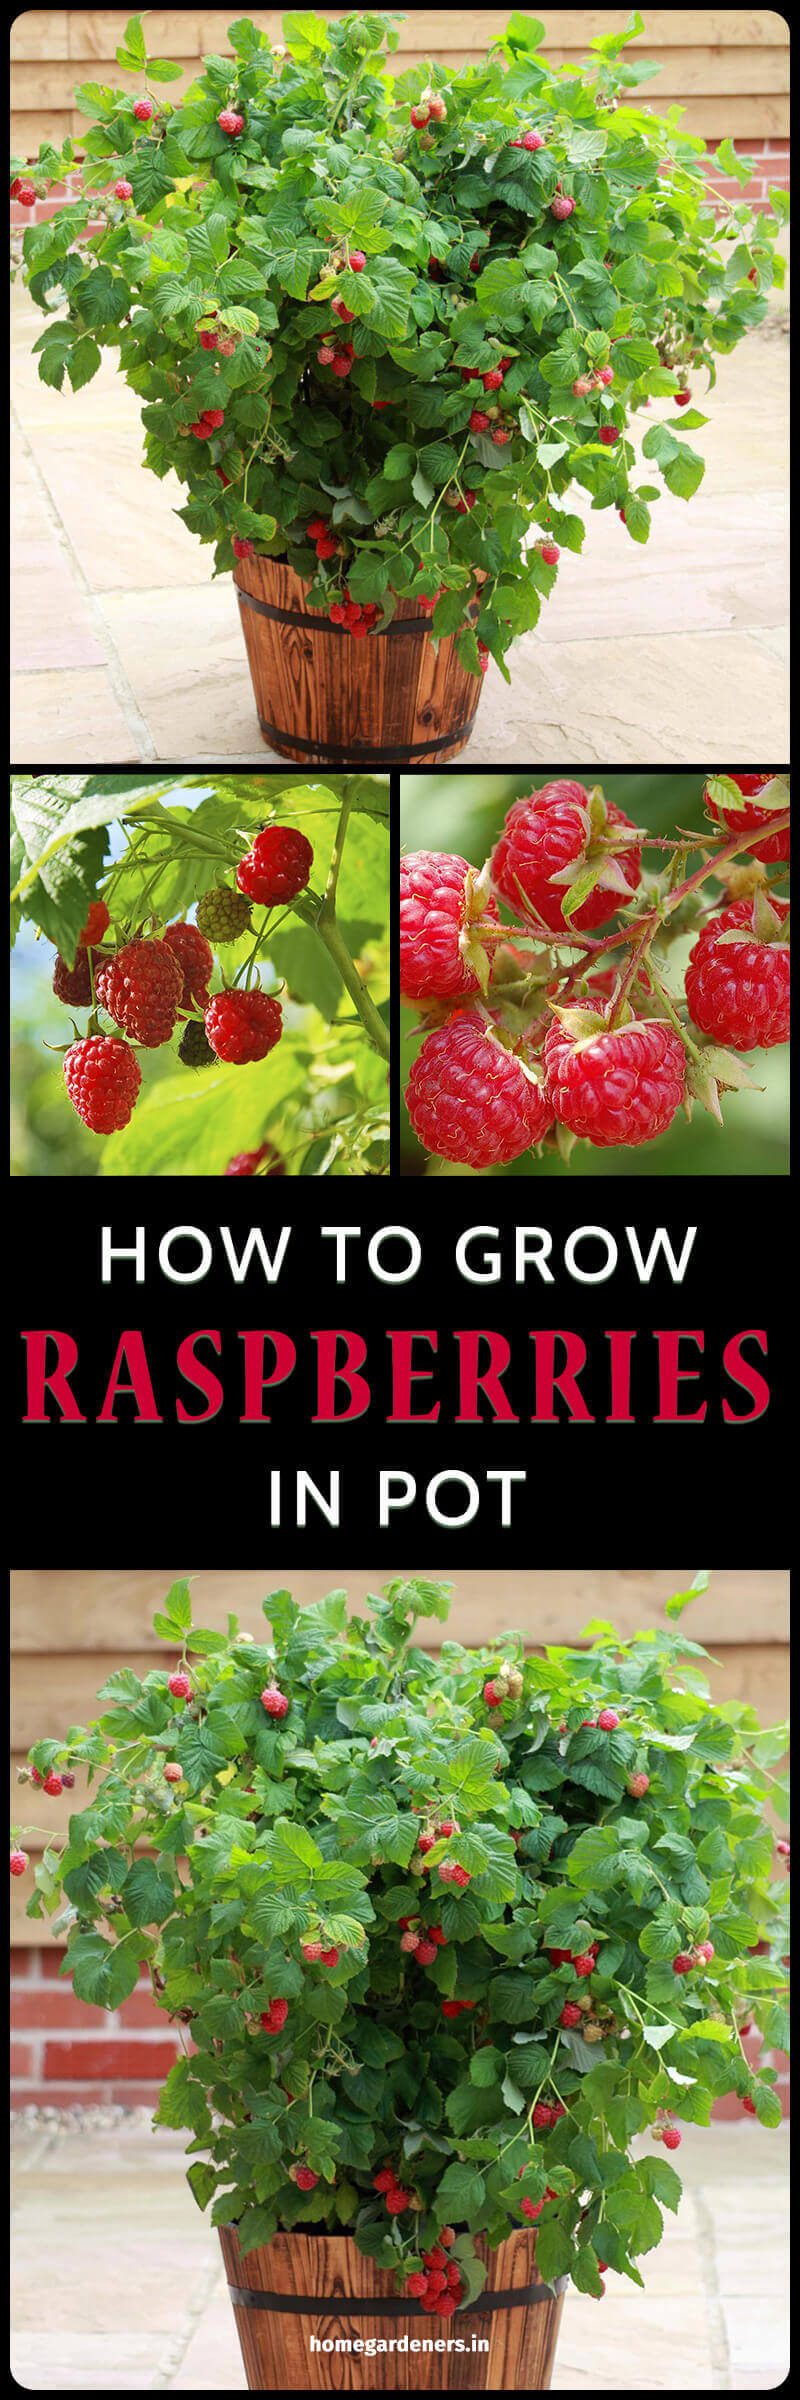 Why Do People Think Raspberry Plants are a Good Idea?